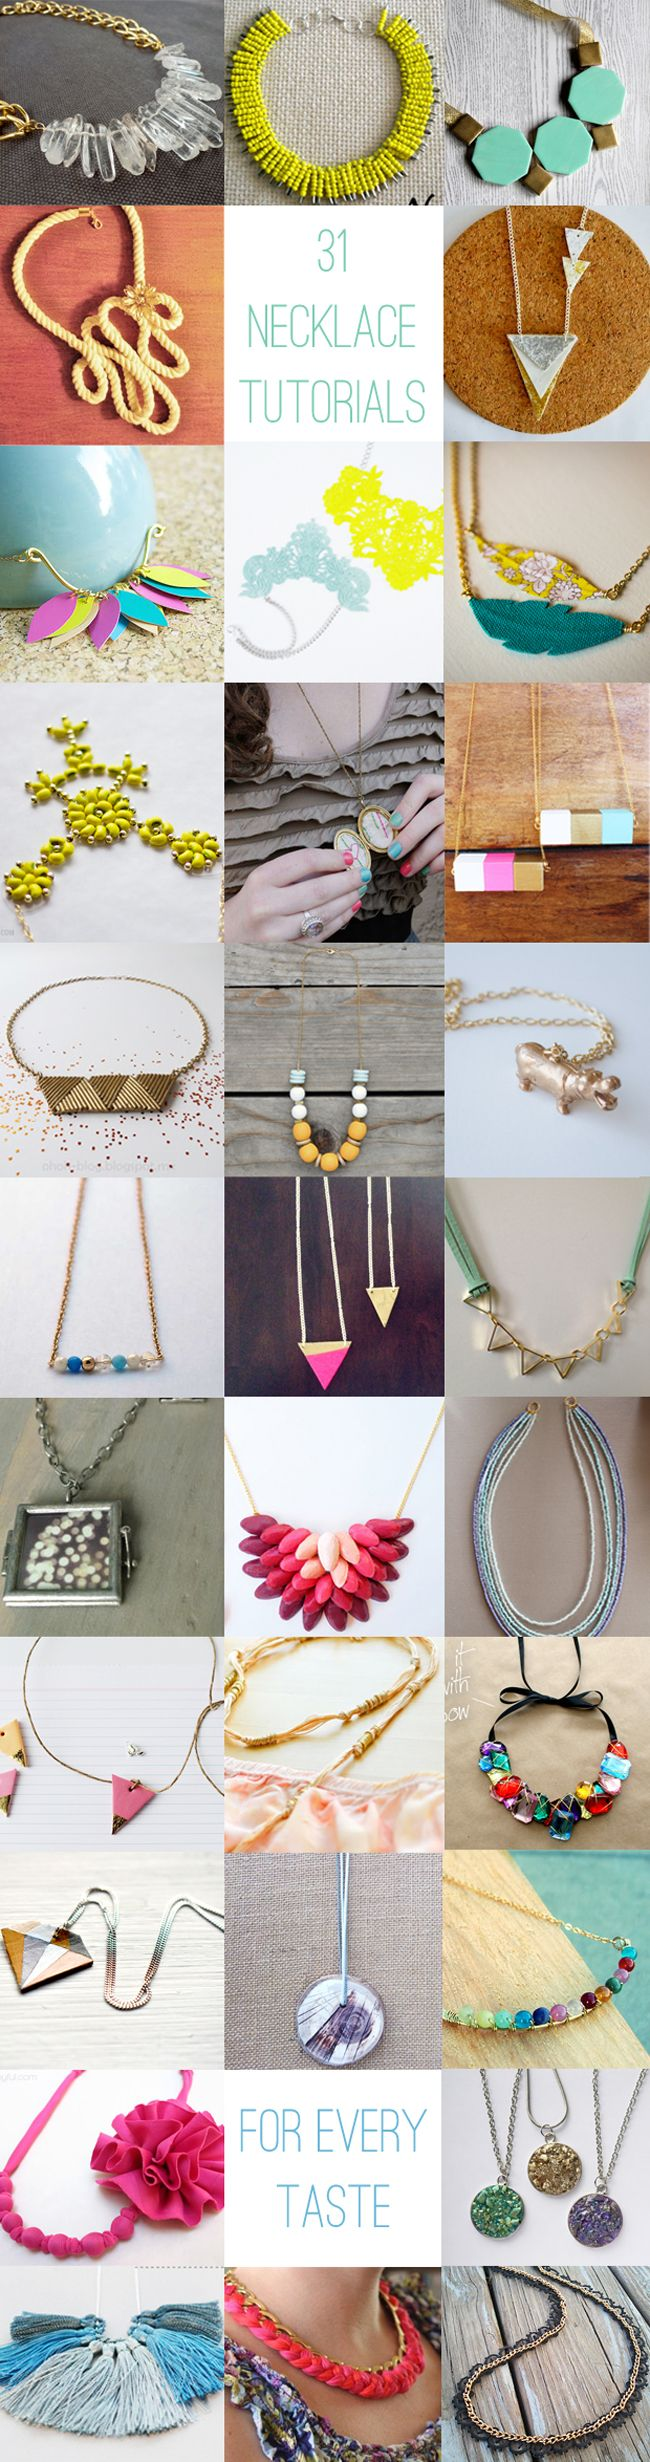 31 DIY necklaces to suit all styles! Learn how to make necklaces using a variety of materials and techniques.